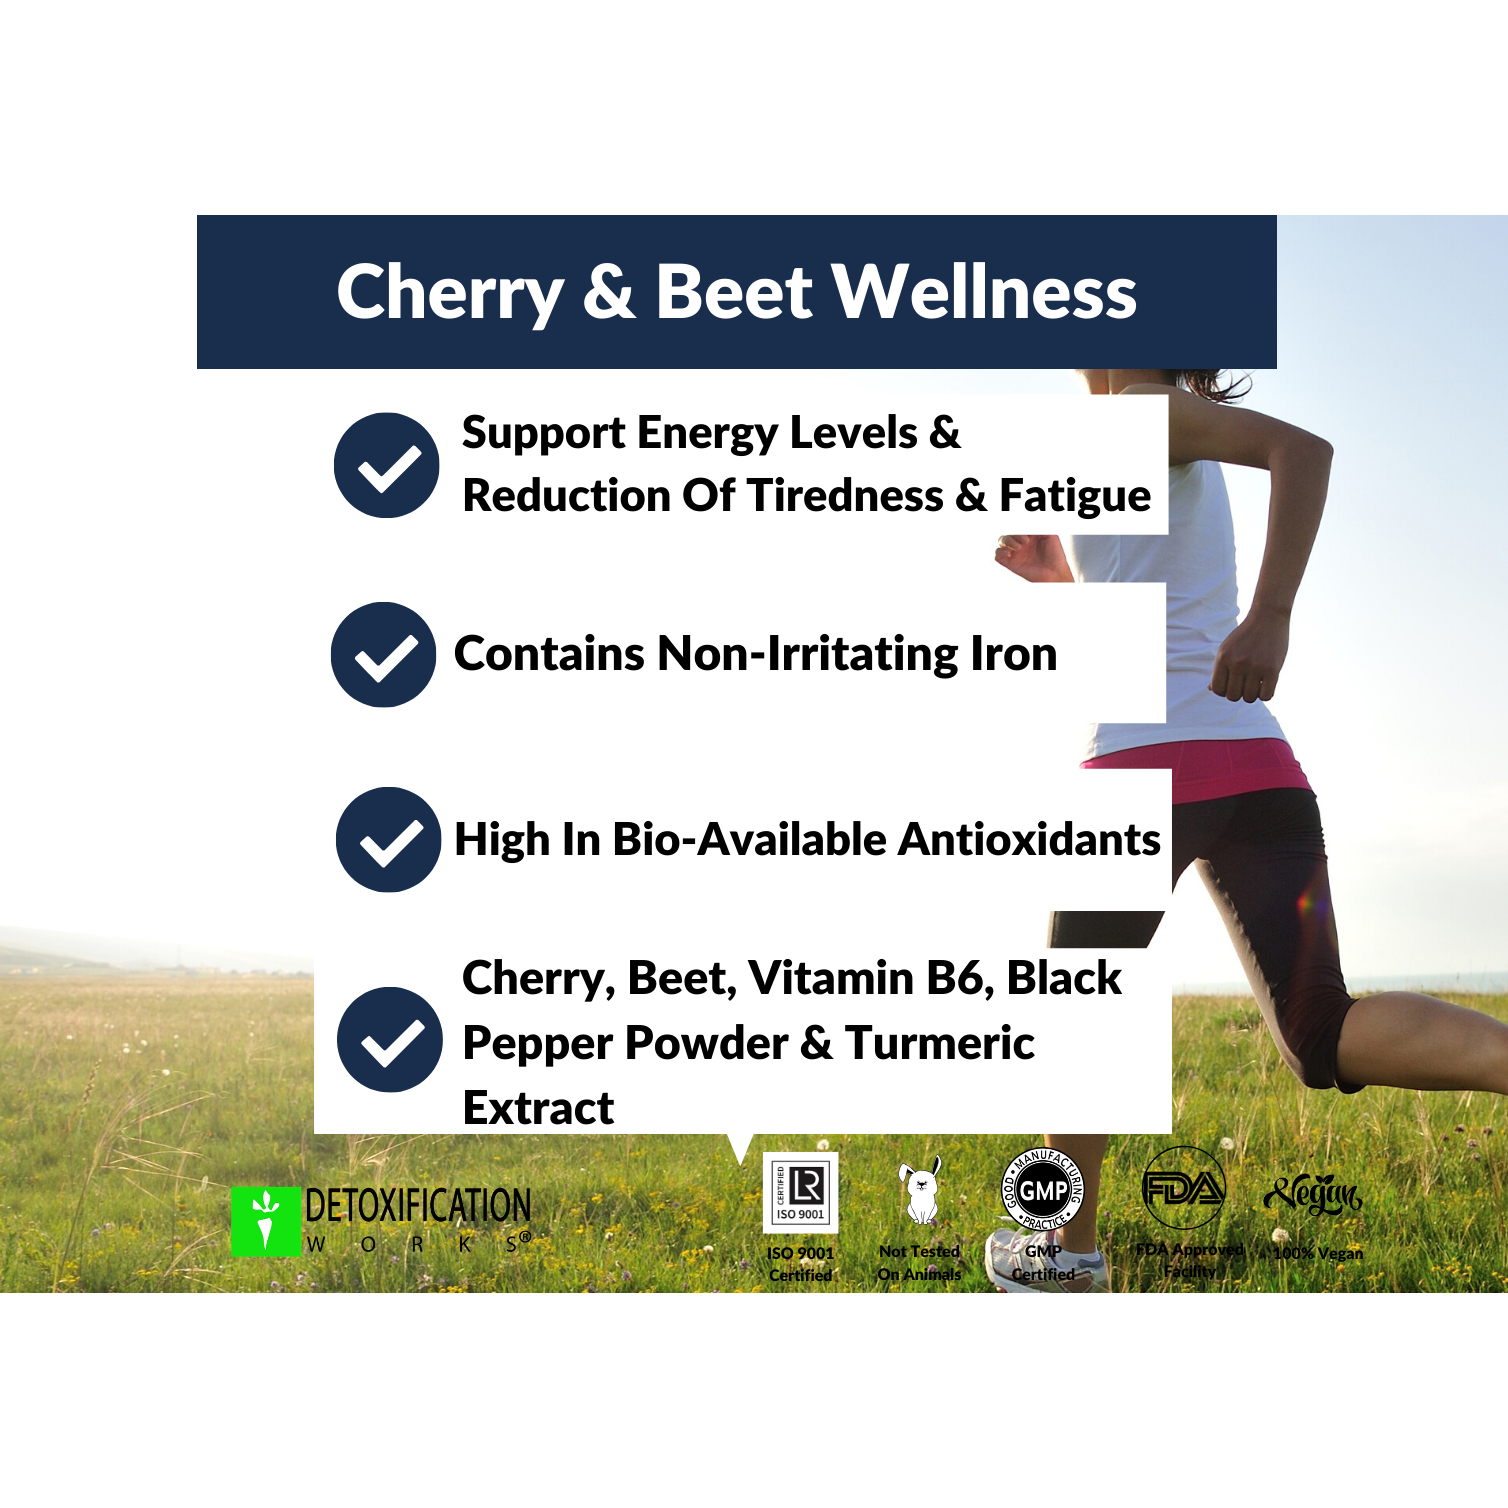 cherry beet wellness  Slide 4